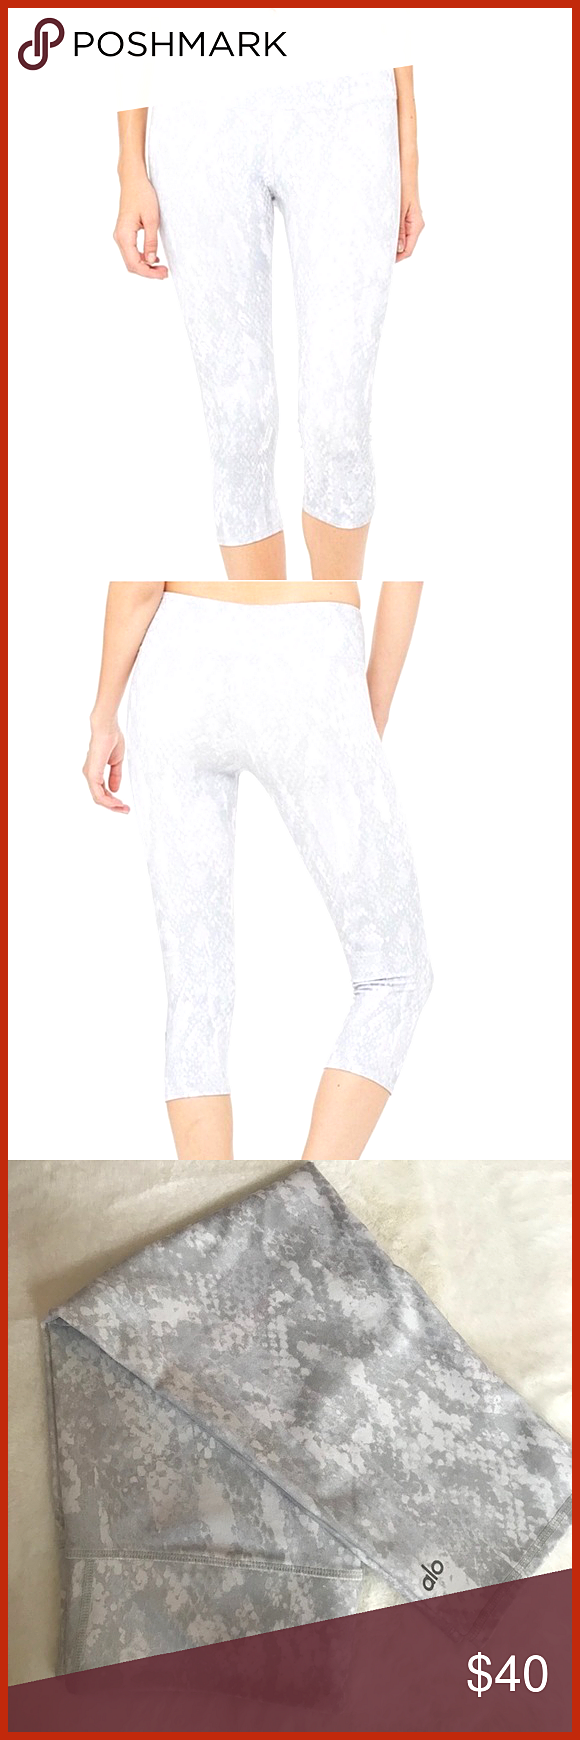 Alo Yoga Snakeskin Capri New No tag Never been used Alo Yoga Snakeskin Capri MidWaist Size S Feel free to contact me or make an offer ALO Yoga Alo Yoga Snakeskin Capri Ne...